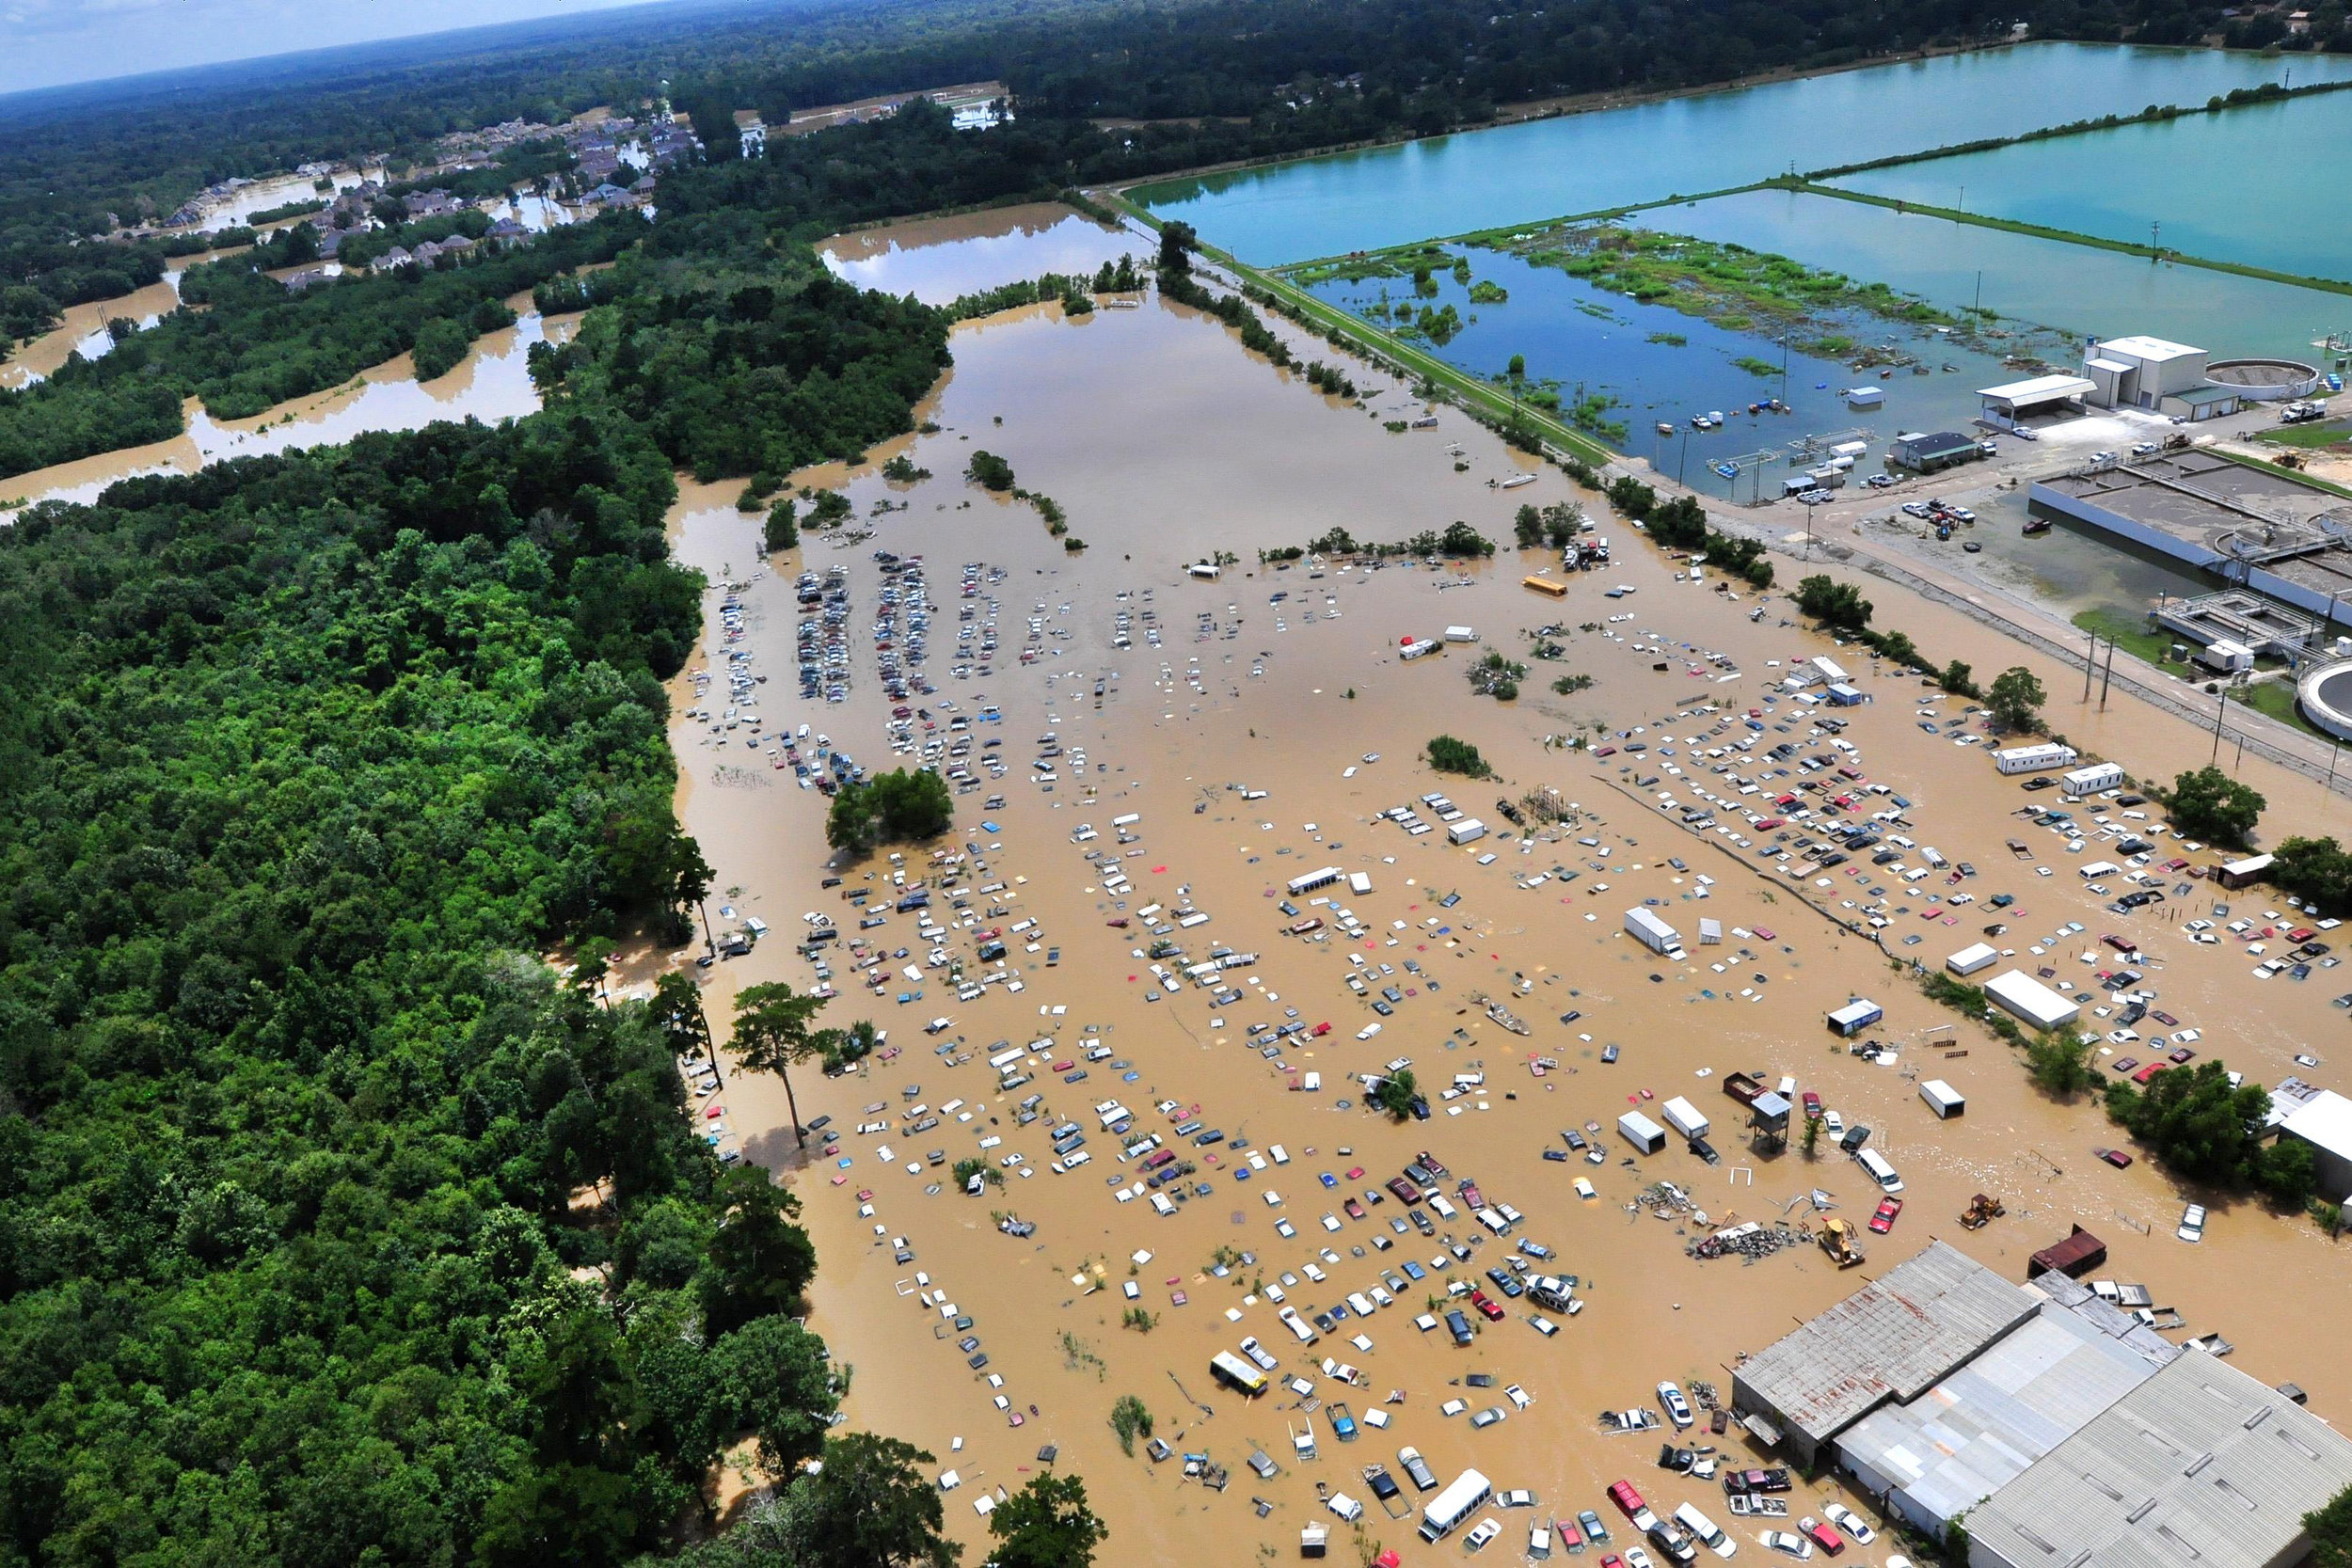 Because of the floods that ravaged South Louisiana in the summer of 2016, canceling an LSU home football date in order to reschedule the Florida game would have hit the Baton Rouge economy hard. (U.S. Coast Guard)